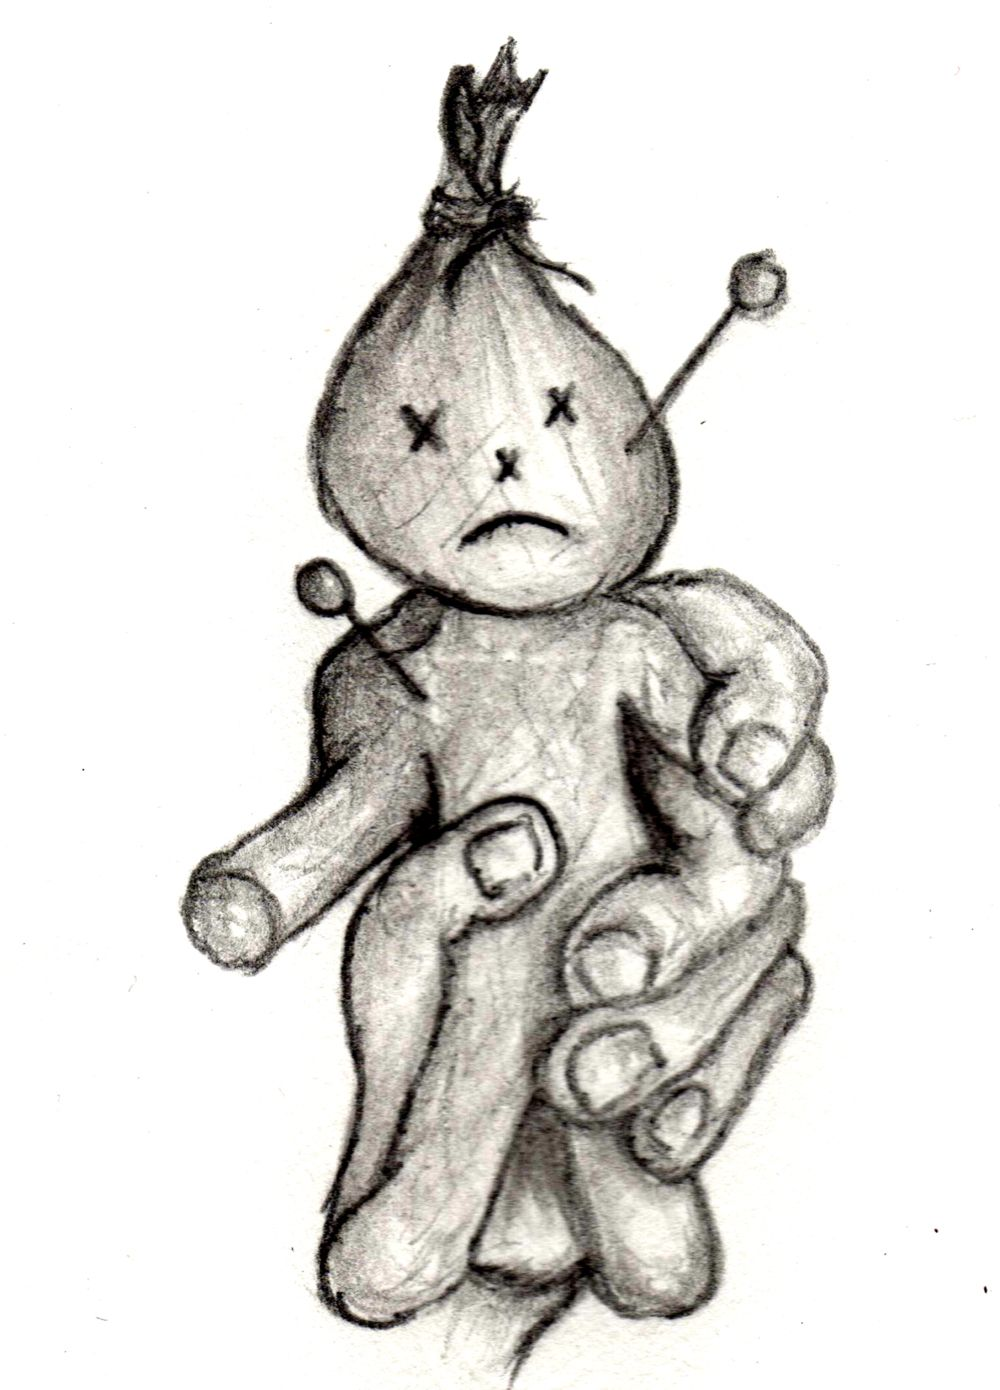 voodoo doll drawings - HD 1000×1390